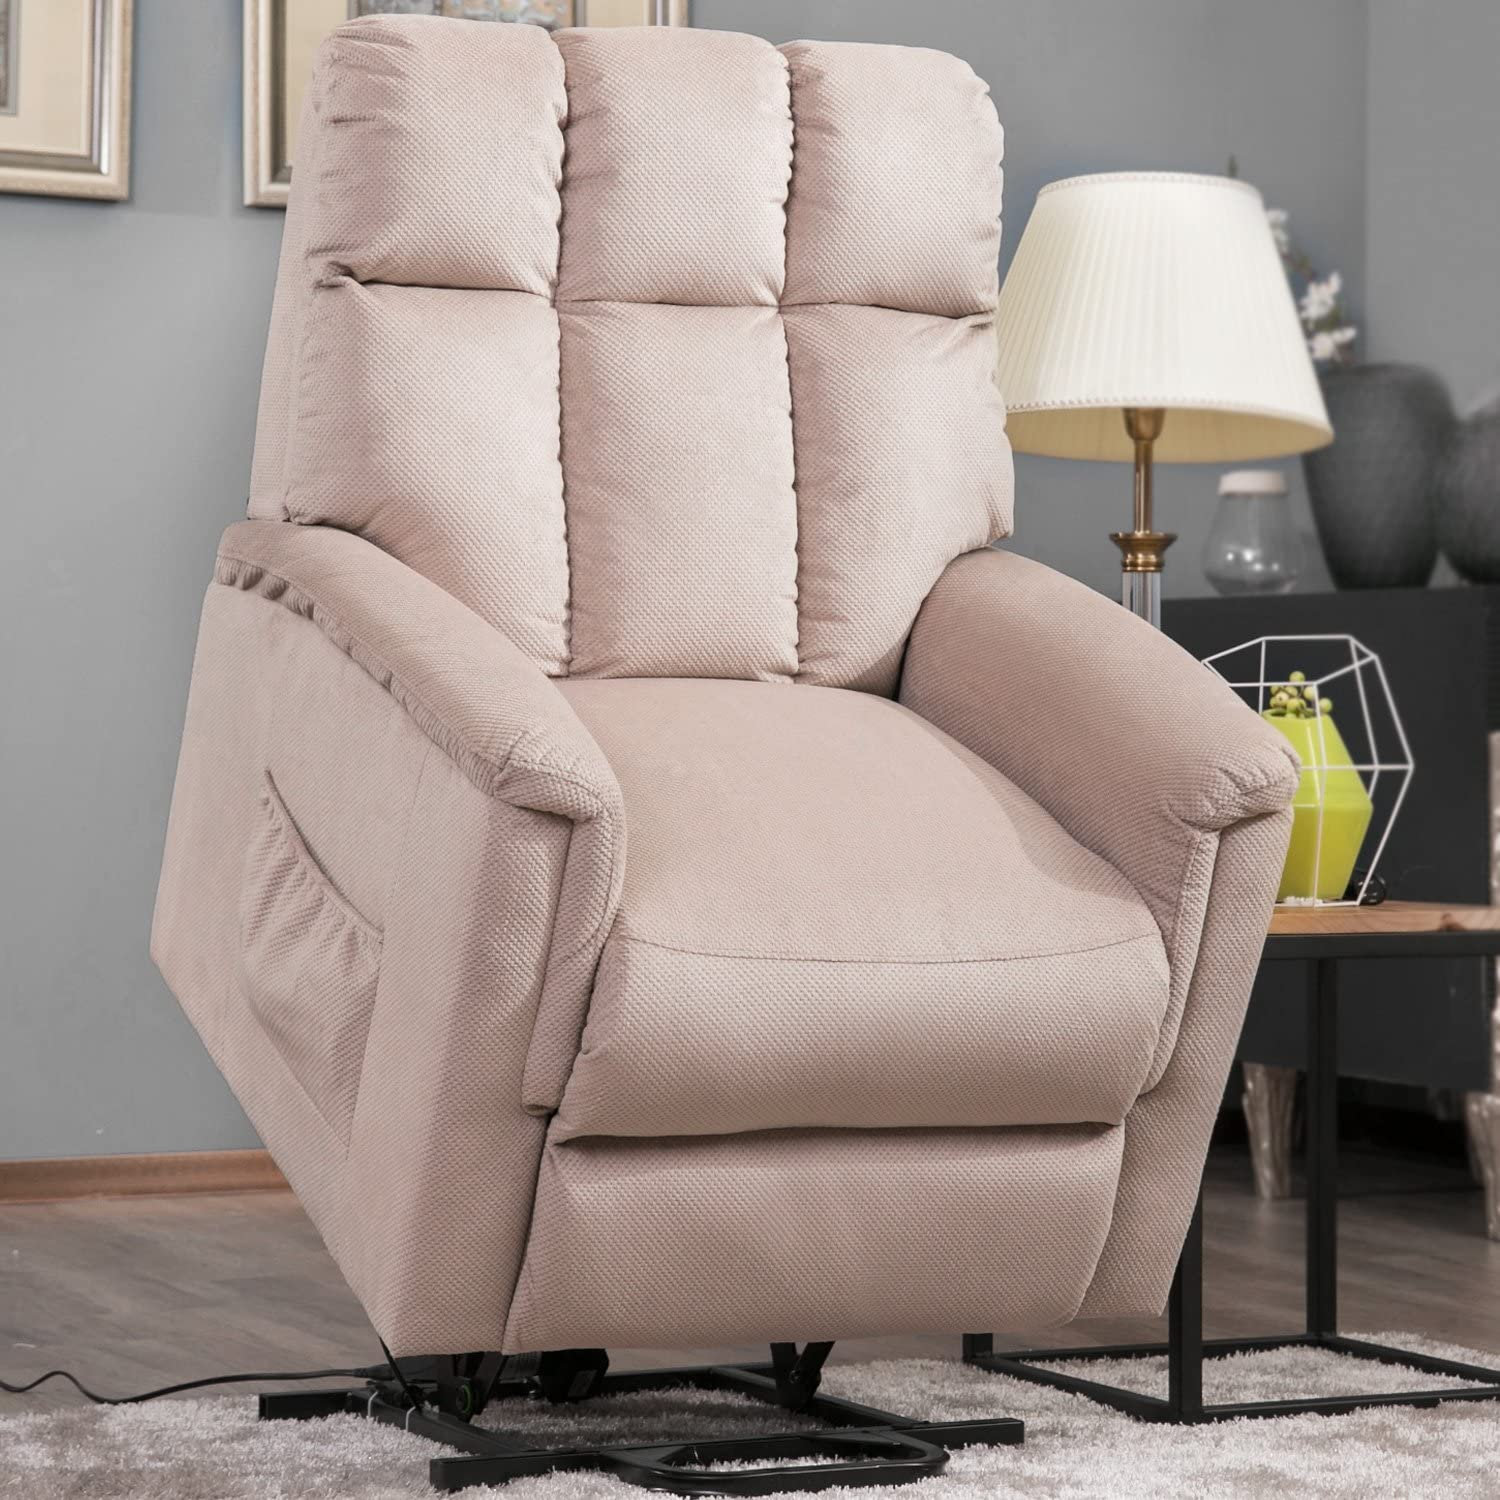 Merax Electric Recliner Chair Lazy Boy Sofa for Elderly, Power Lift Office or Living Room, Linen